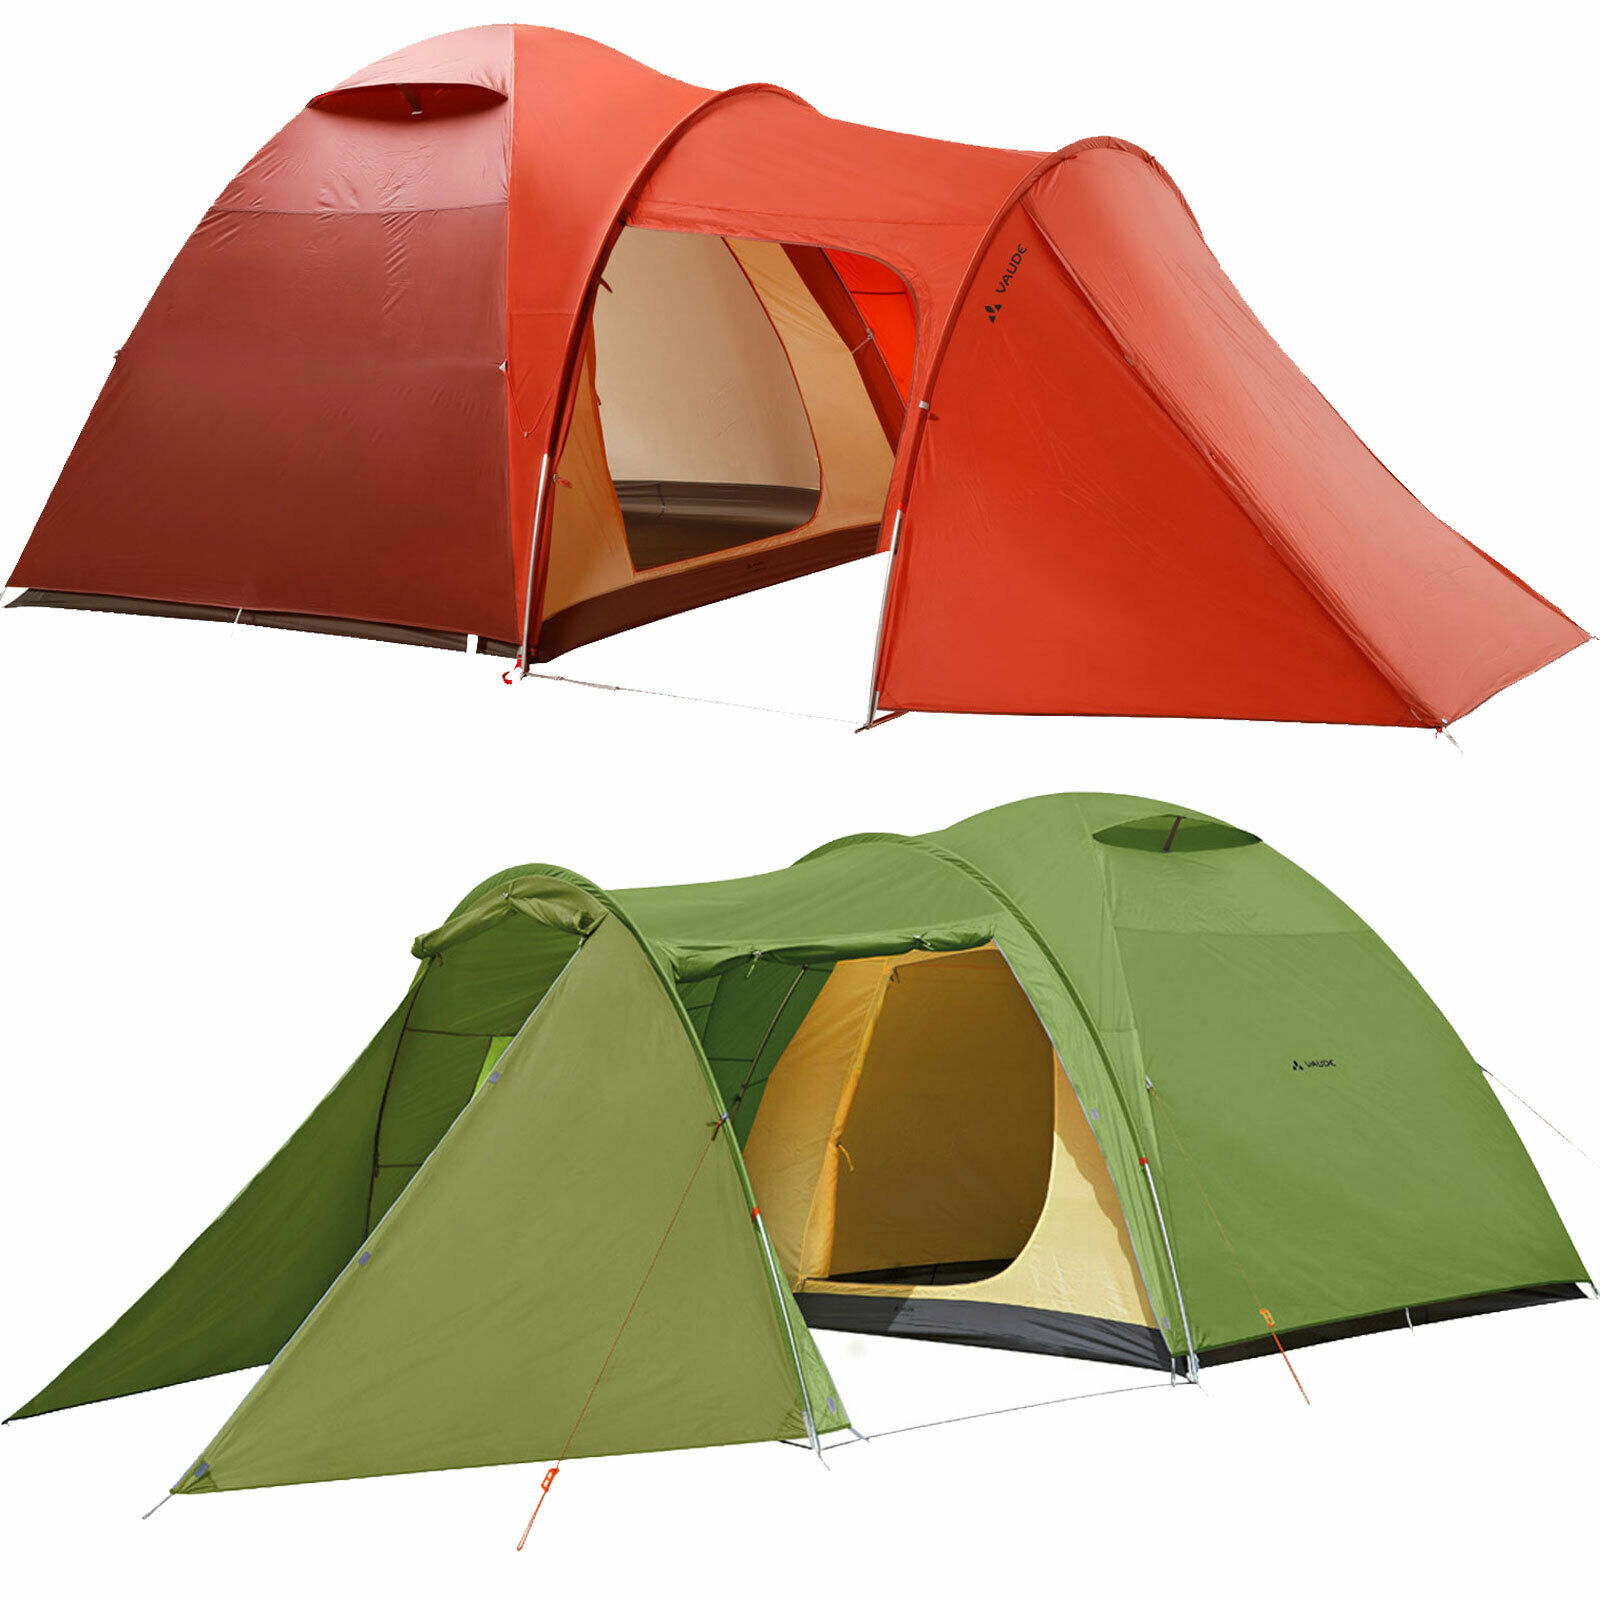 Vaude Campo Casa XT 5 Person Tent Family Tent Large Tent Group Tent Dome Tent